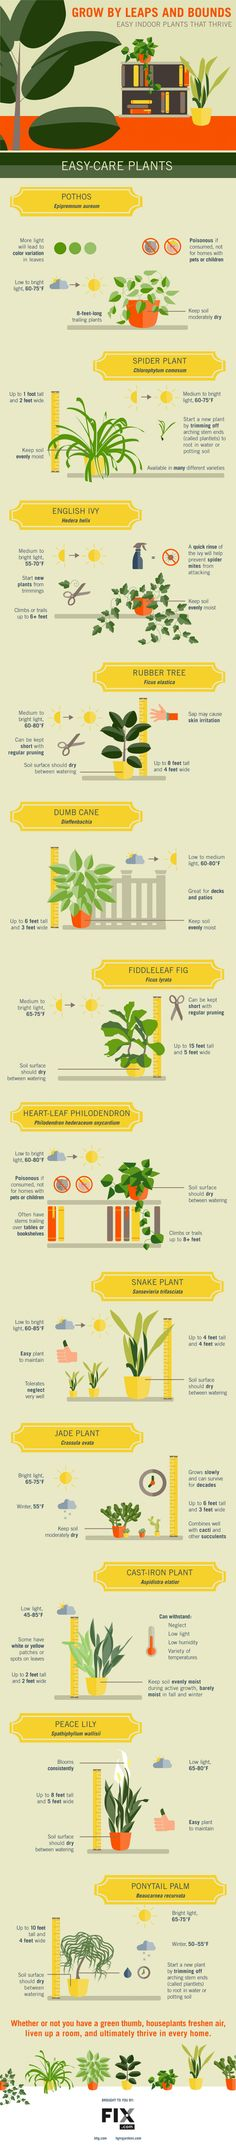 Grow by Leaps and Bounds: Easy Indoor Plants that Thrive Infographic